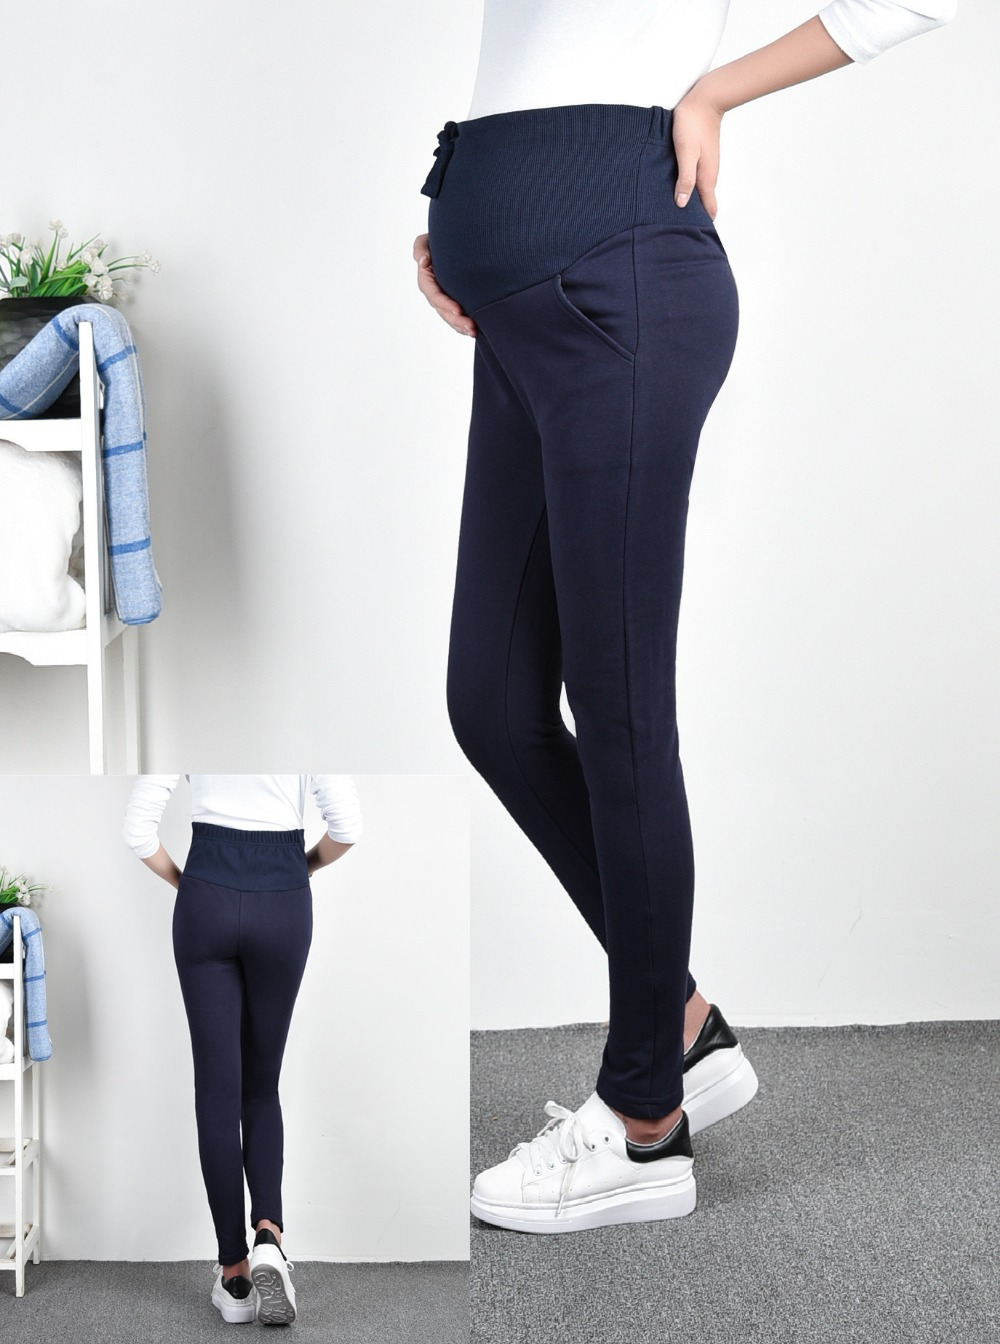 Free shipping on maternity clothes for women at fefdinterested.gq Shop maternity clothes, jeans, dresses & more from the best brands. Totally free shipping & returns.